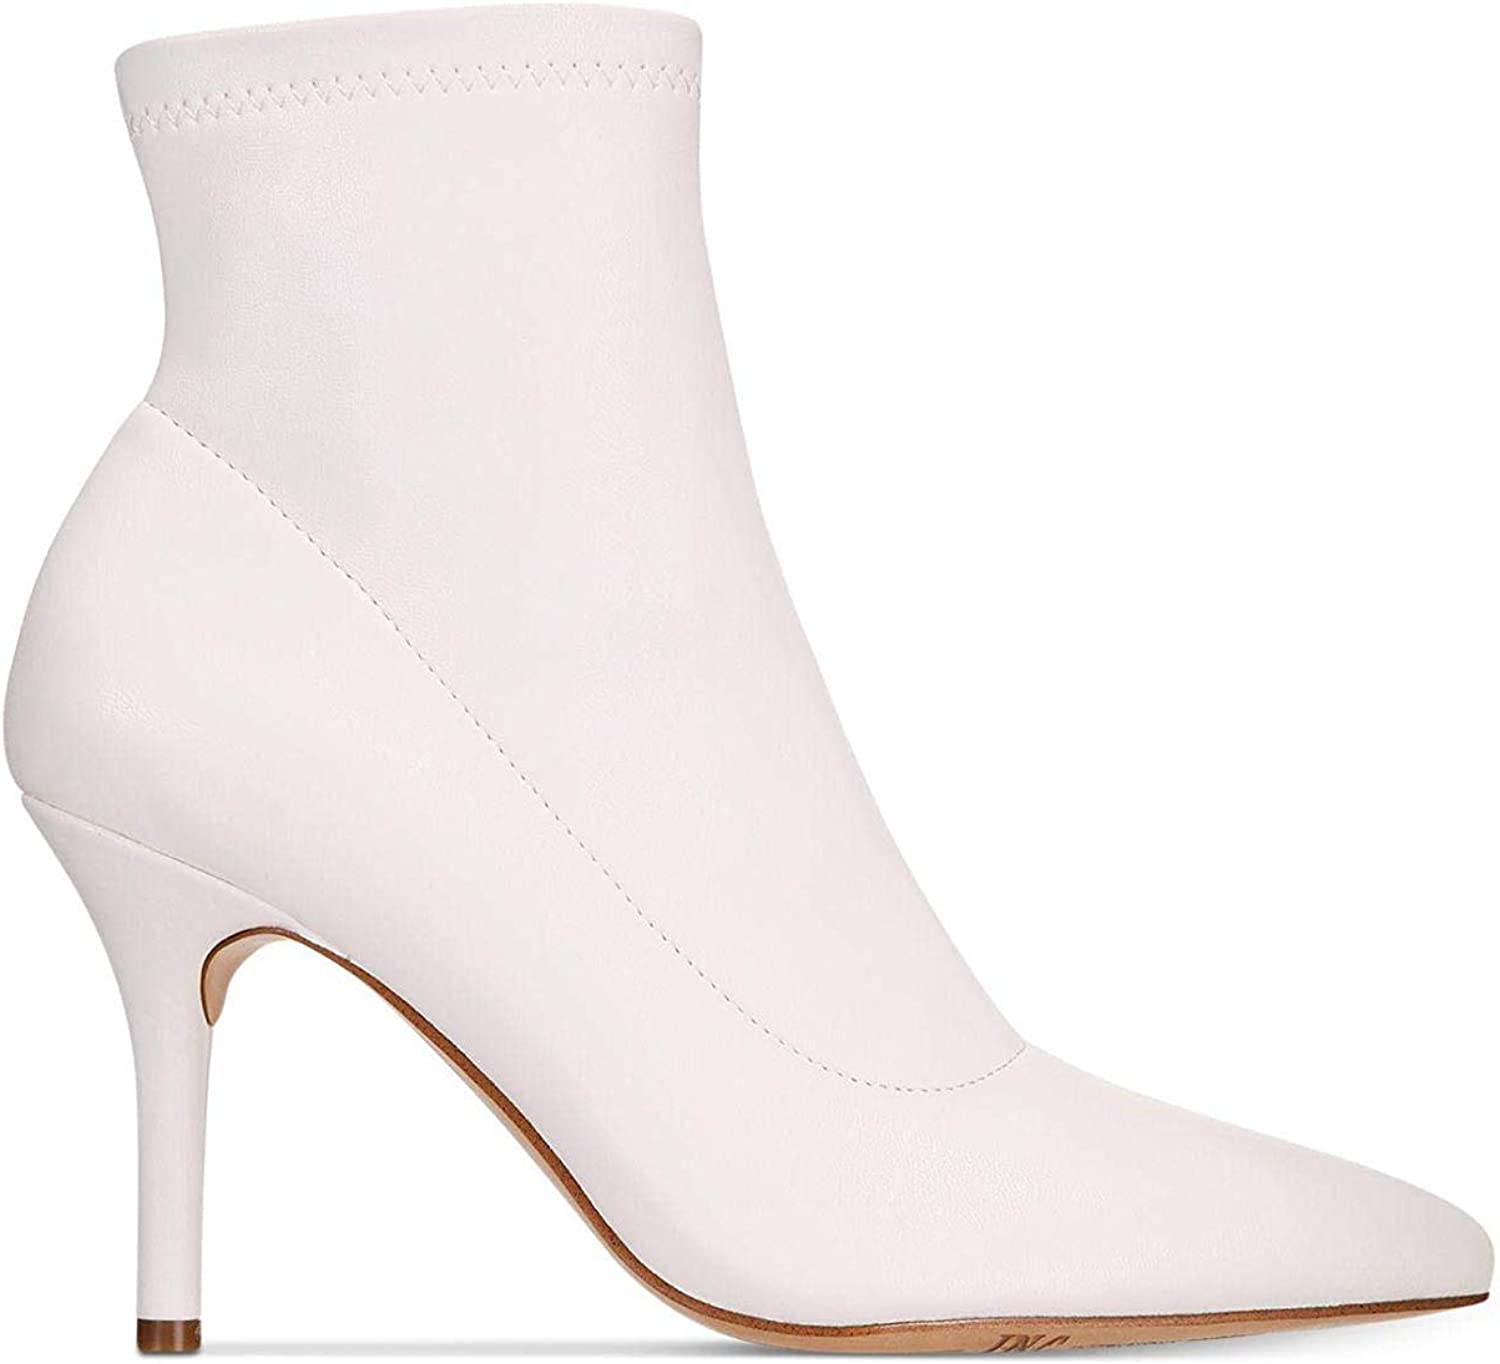 INC International Concepts Womens Zetep Pointed